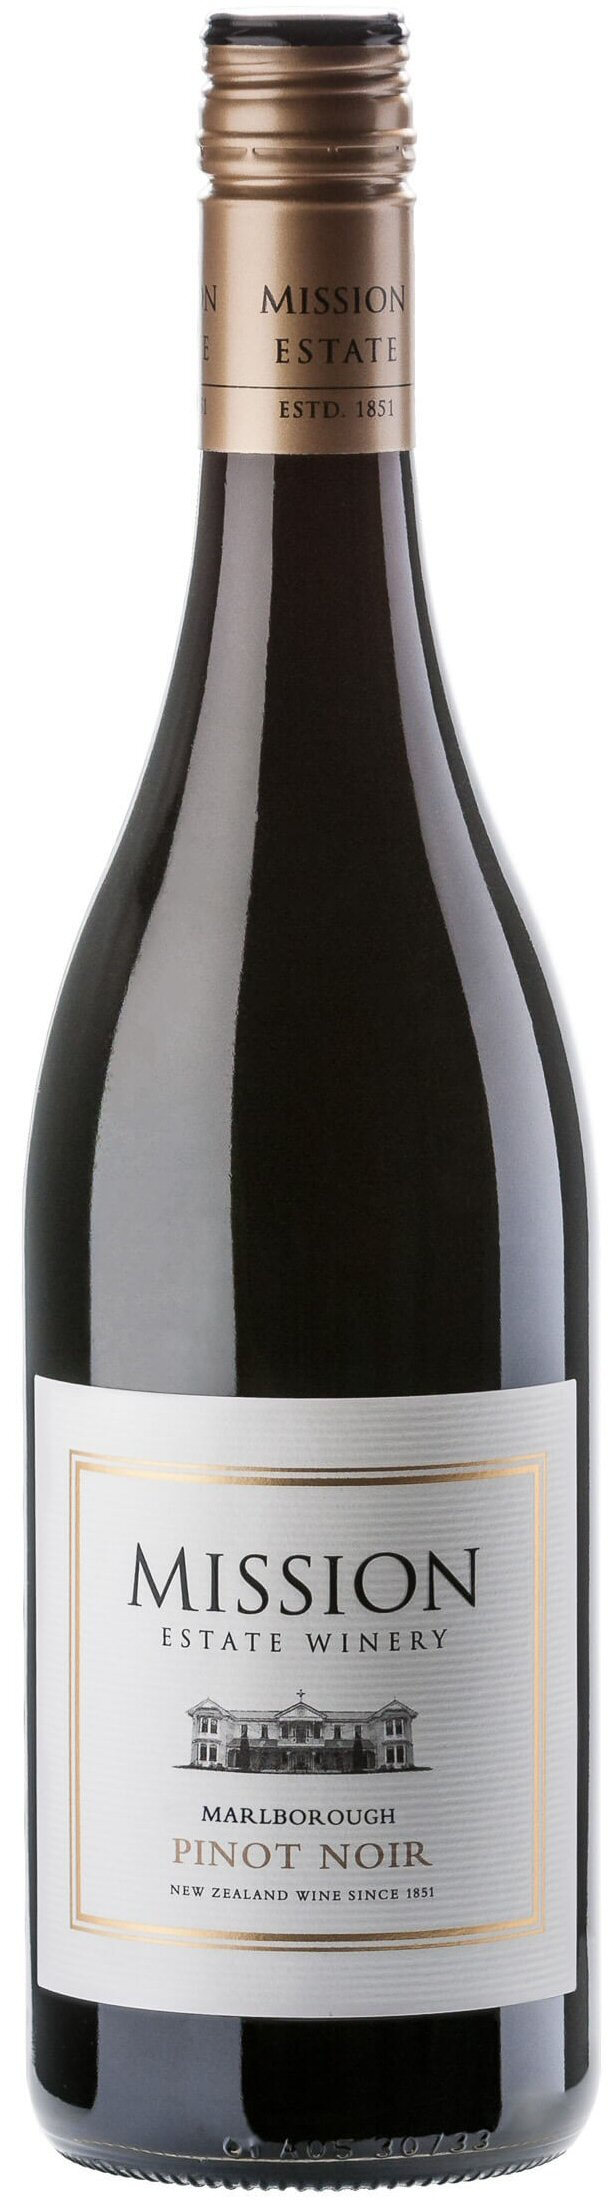 Mission Estate Pinot Noir 2013